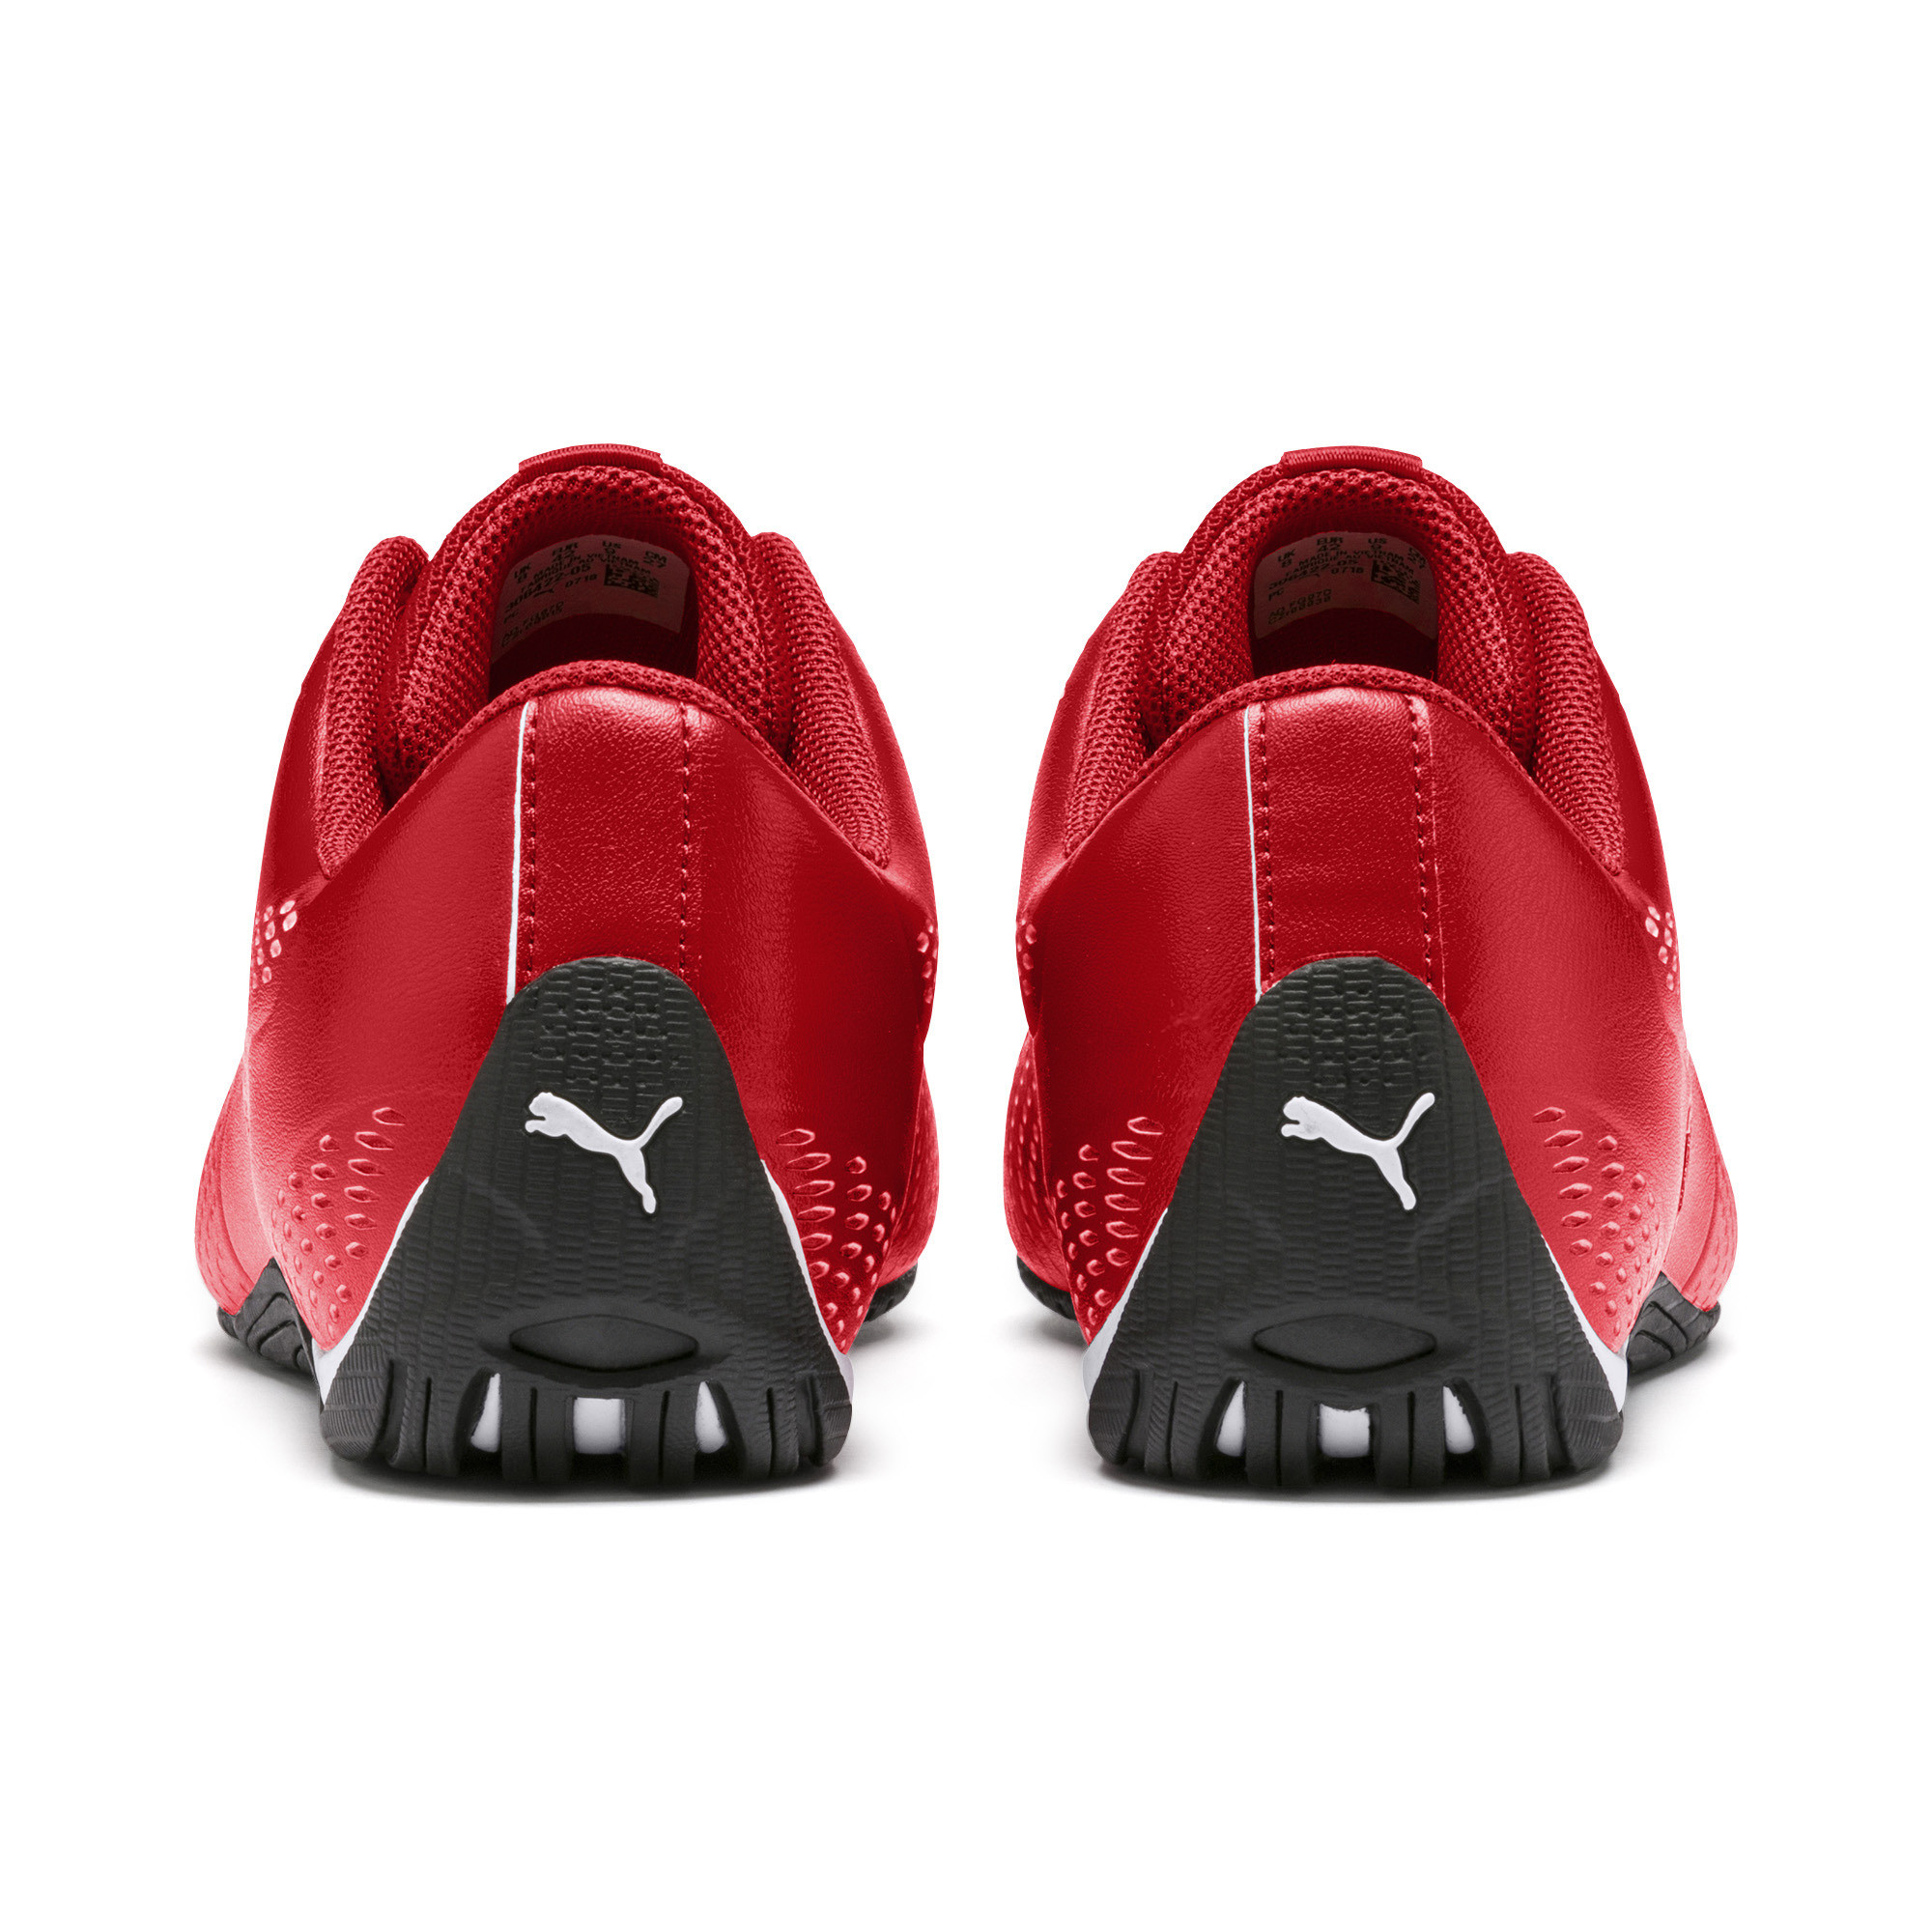 PUMA-Men-039-s-Scuderia-Ferrari-Drift-Cat-5-Ultra-II-Shoes thumbnail 10